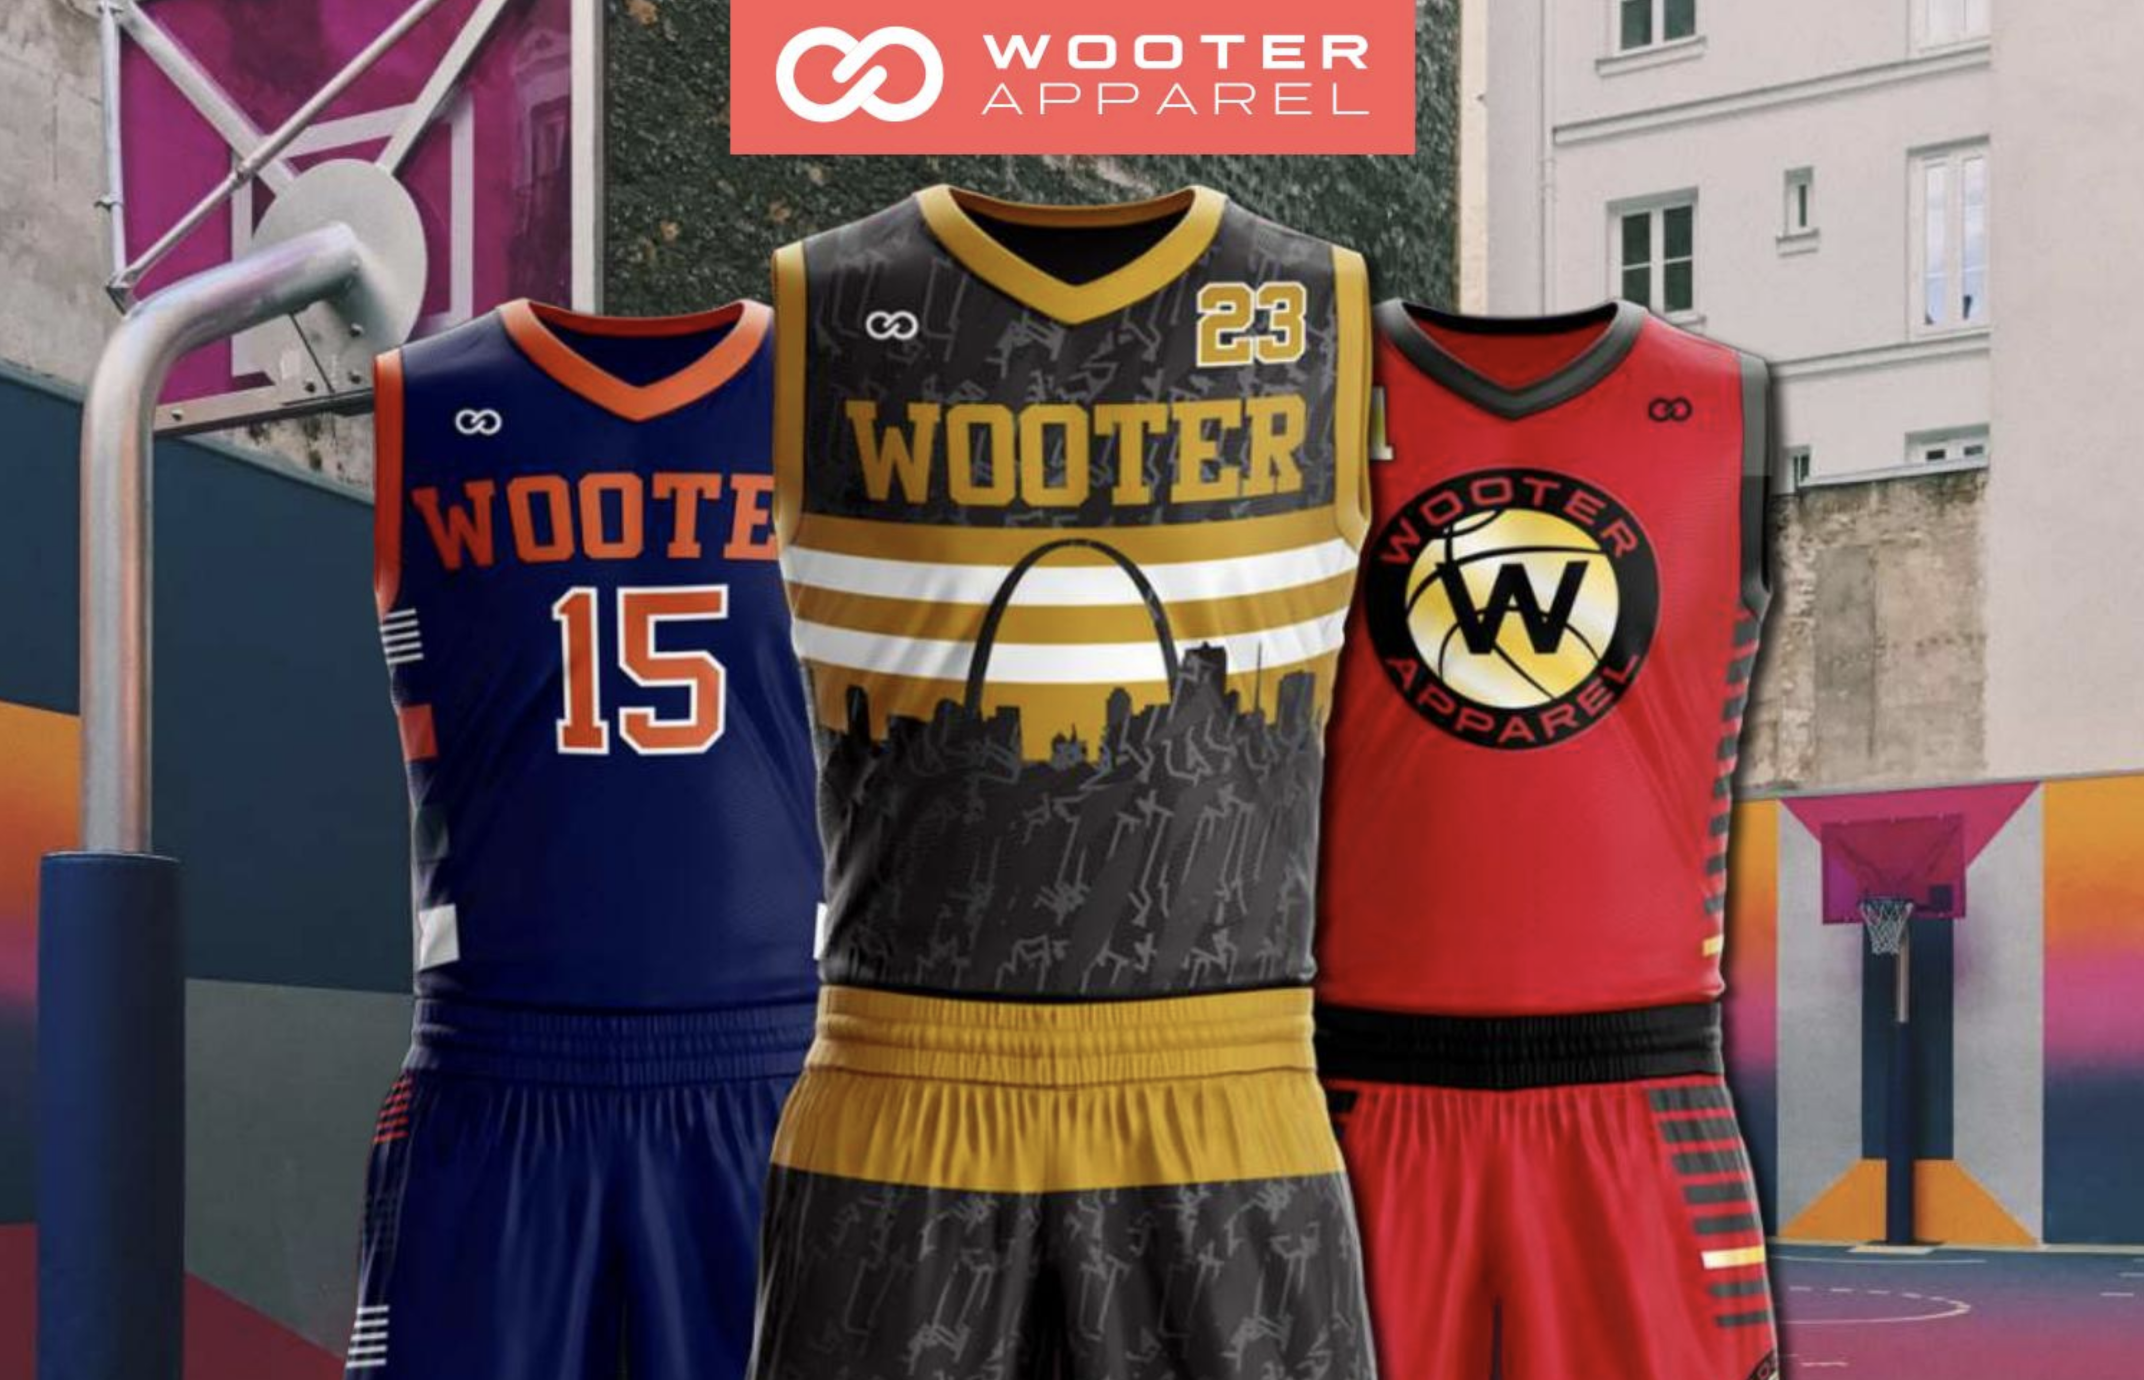 Teams from recreational leagues, youth sports, college and professional sports, have partnered with Wooter Apparel and have their league featured on the Wooter App.